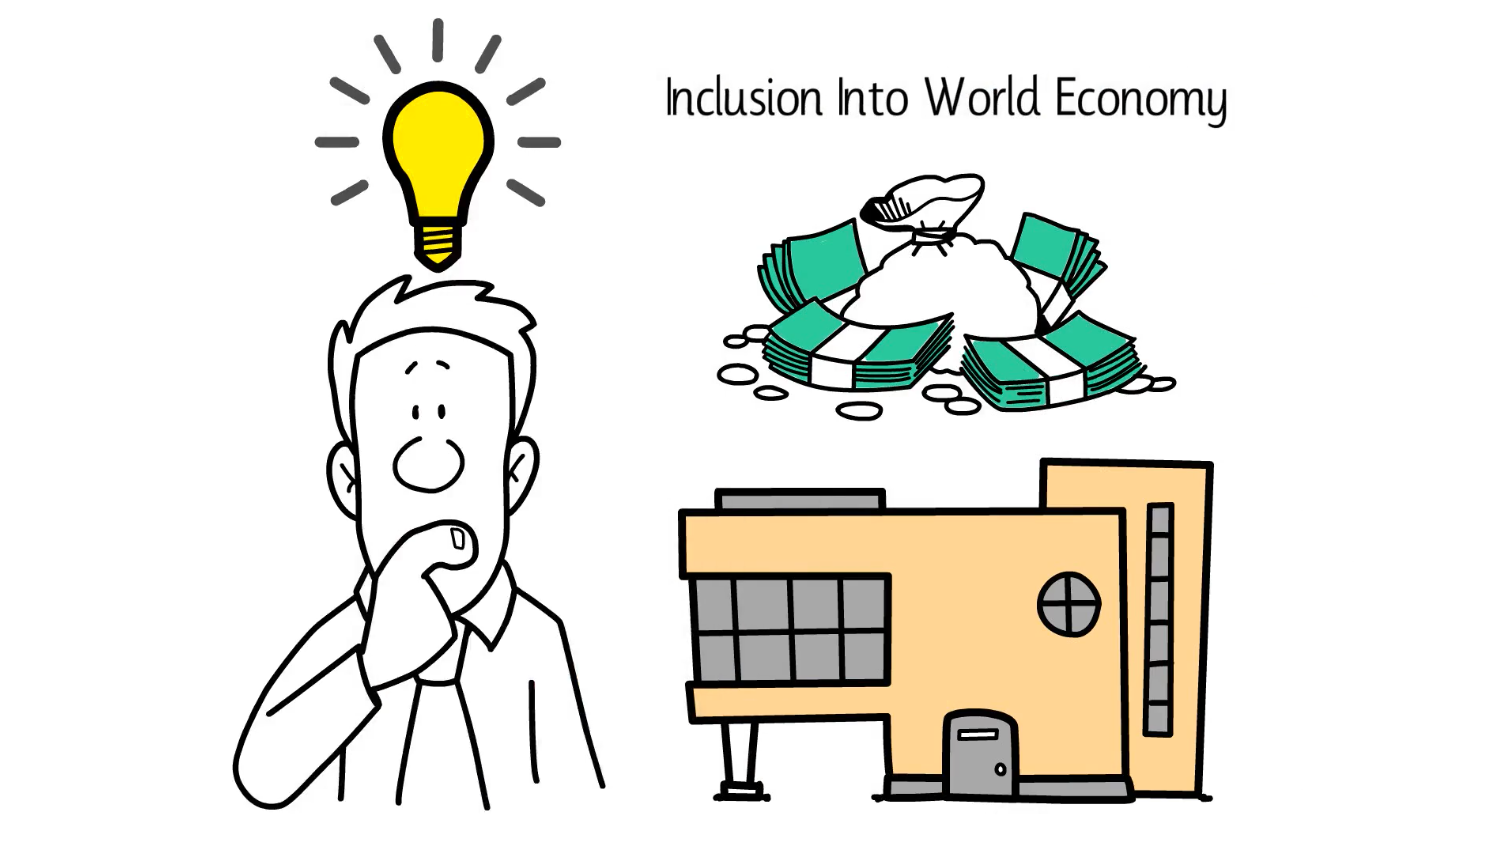 Inclusion of indigenous peoples into world economy